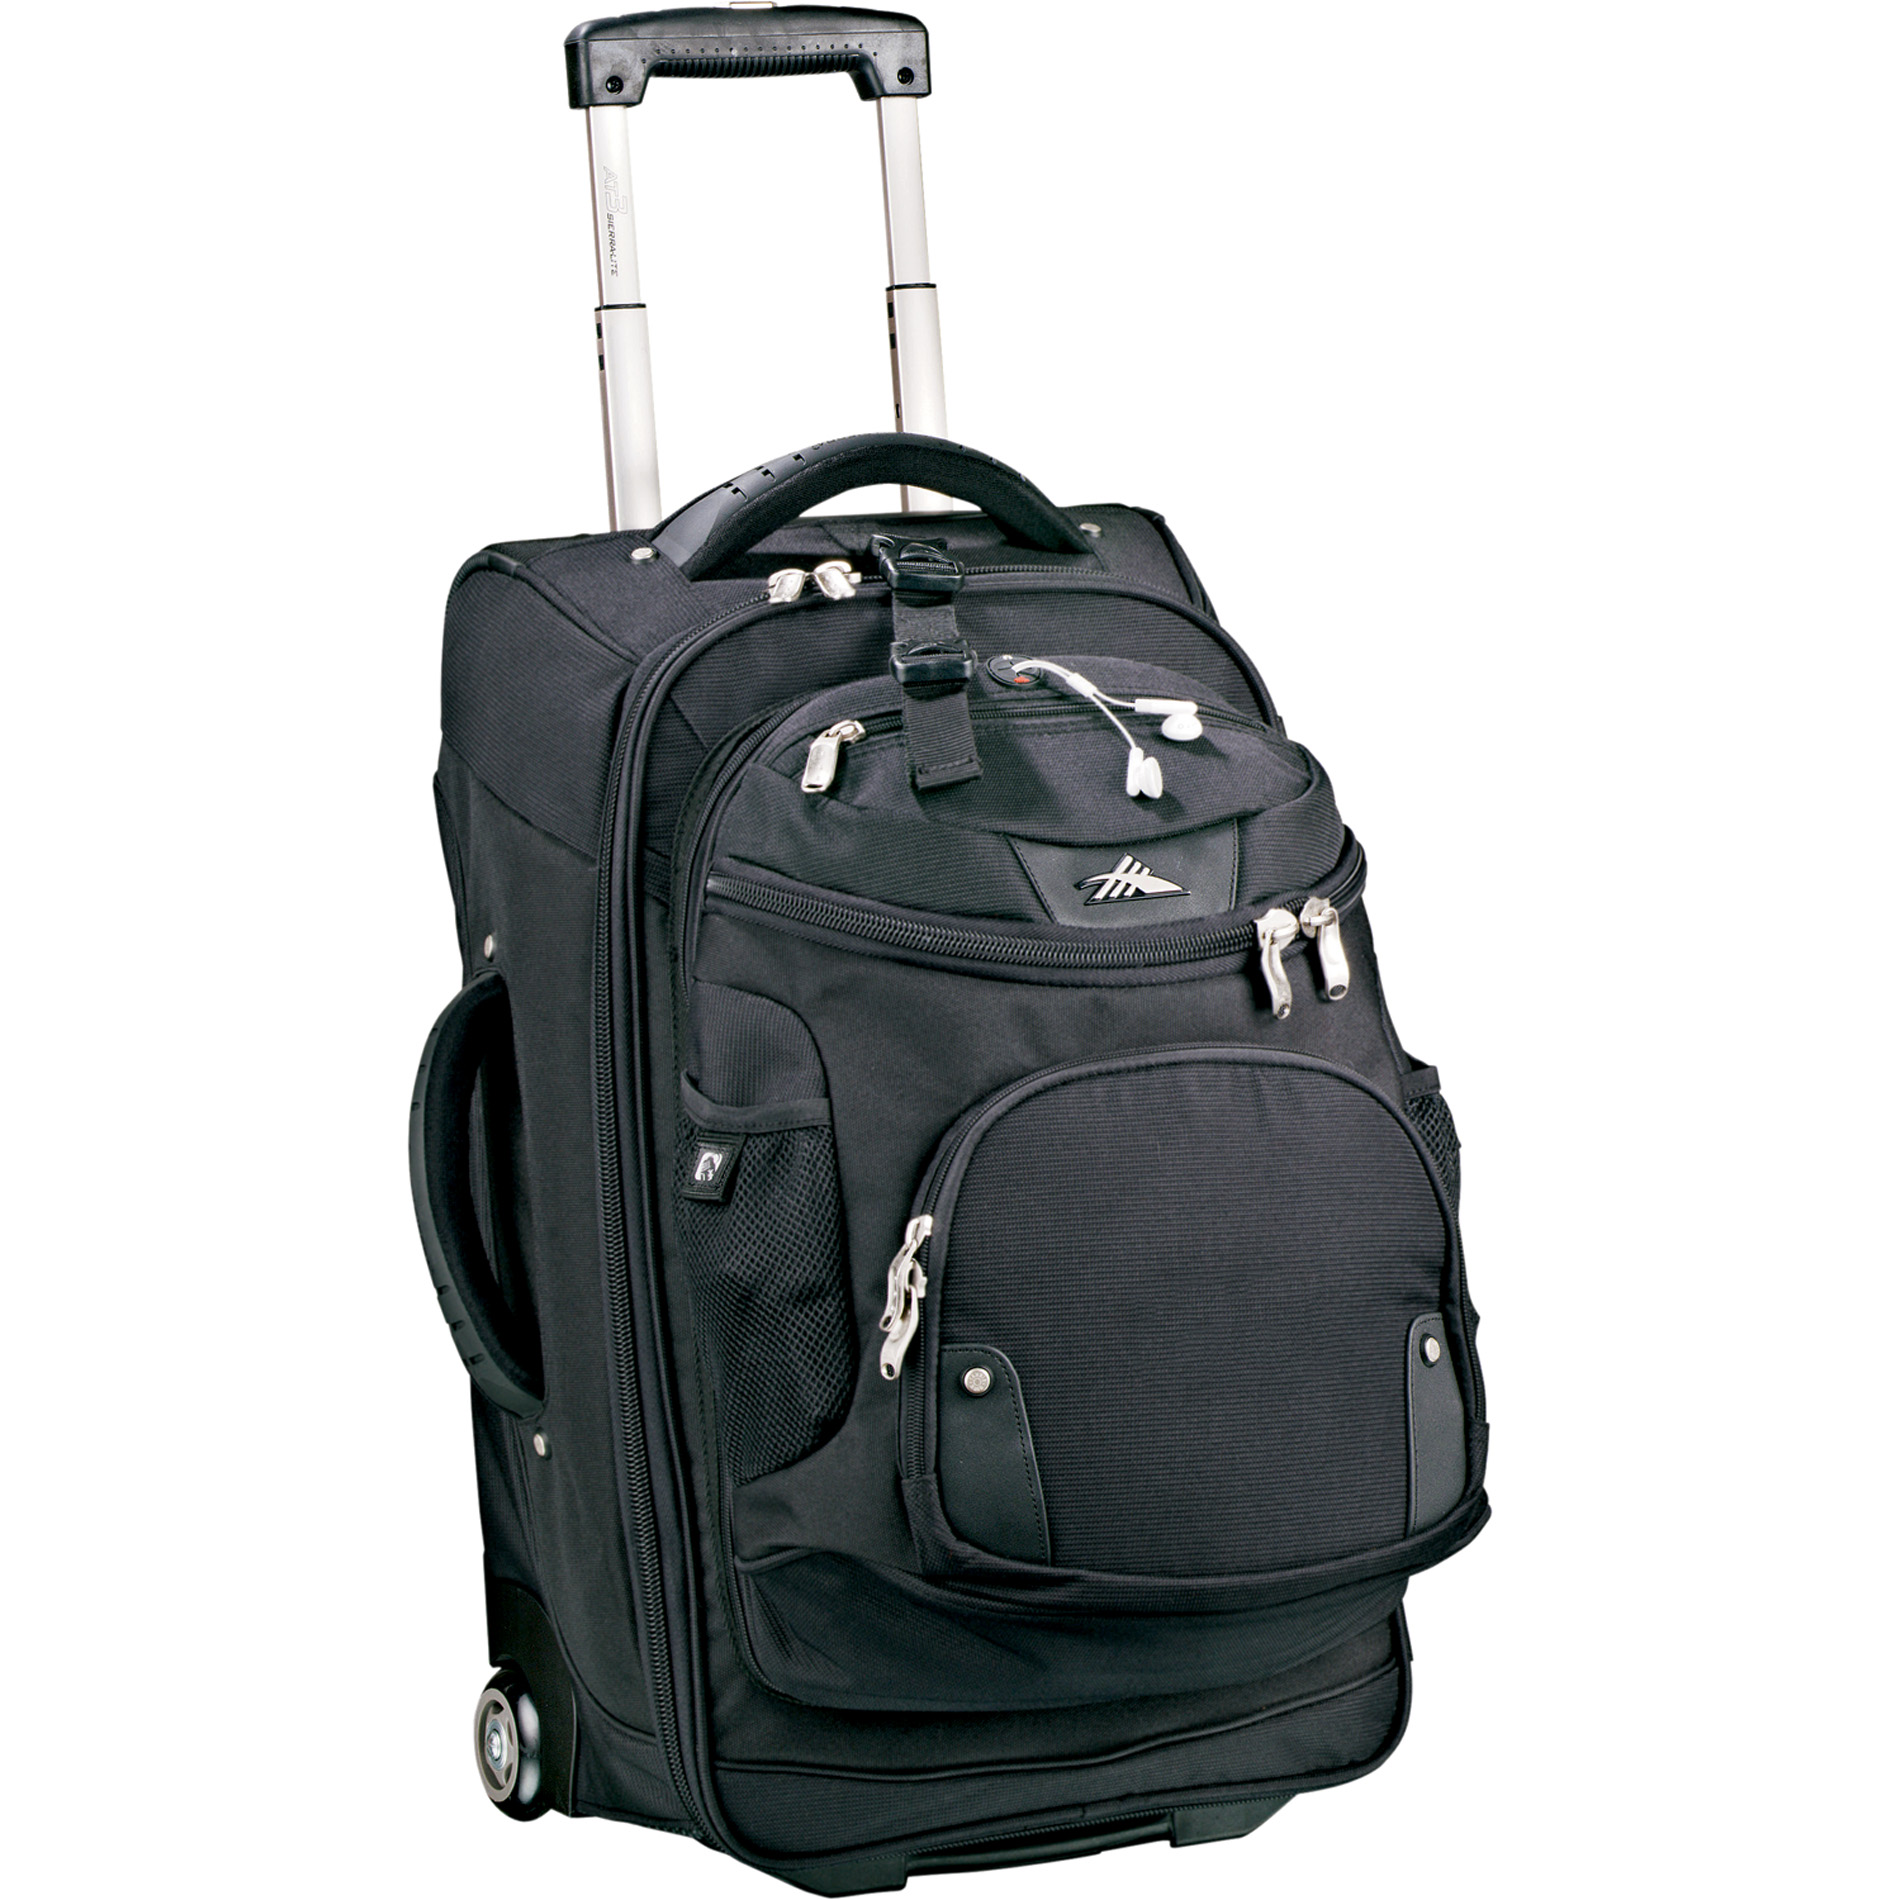 "High Sierra 8050-33 - 22"" Wheeled Carry-On with DayPack"